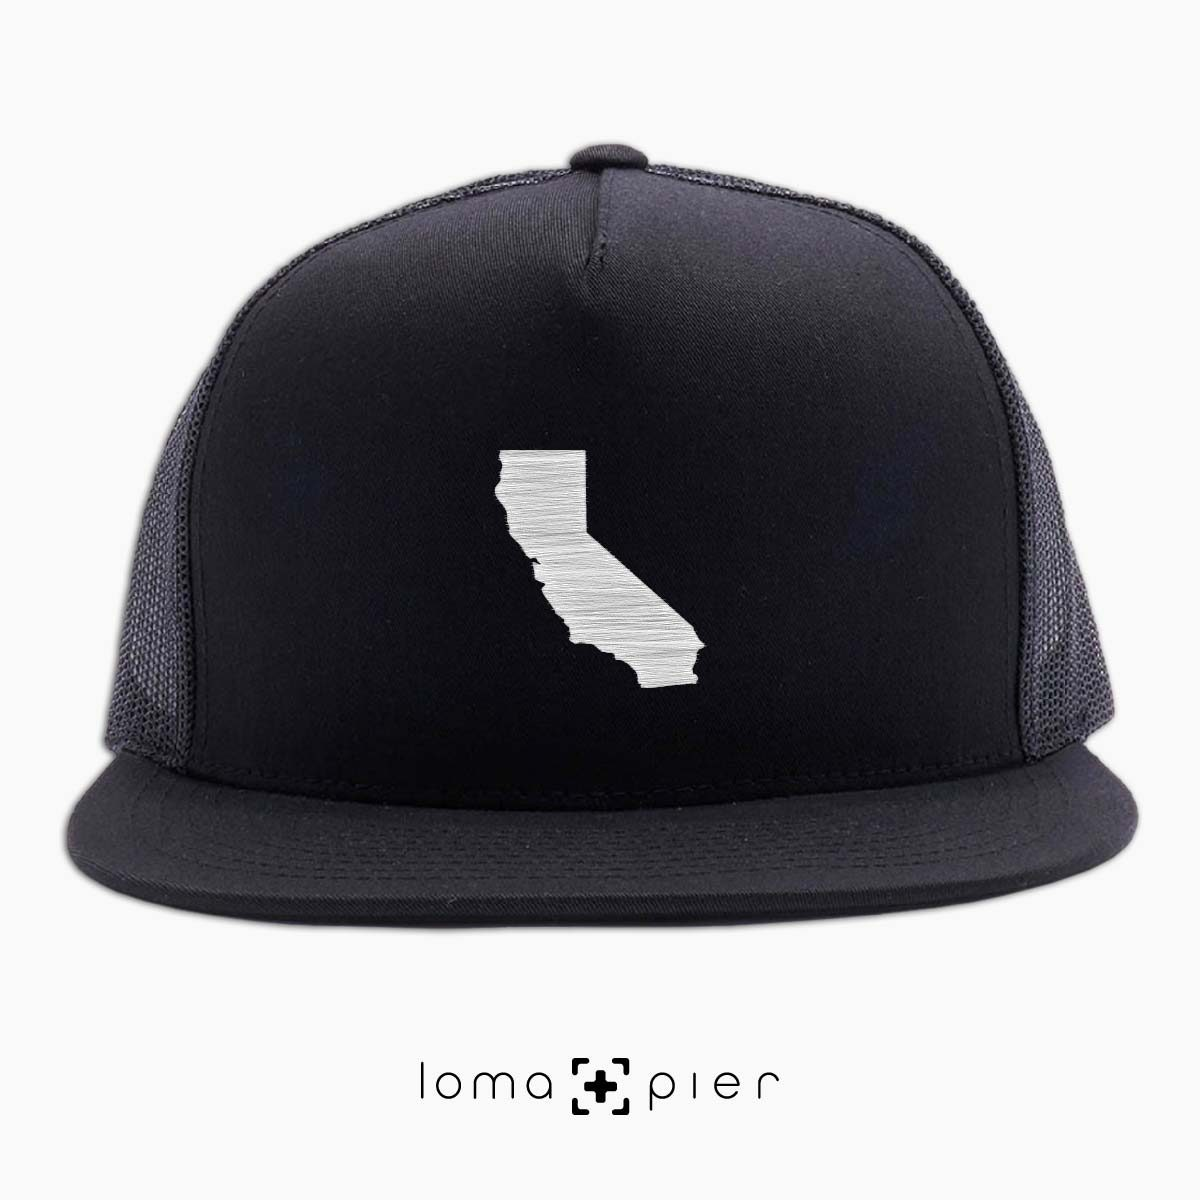 CALIFORNIA icon beach netback trucker hat in black by loma+pier hat store